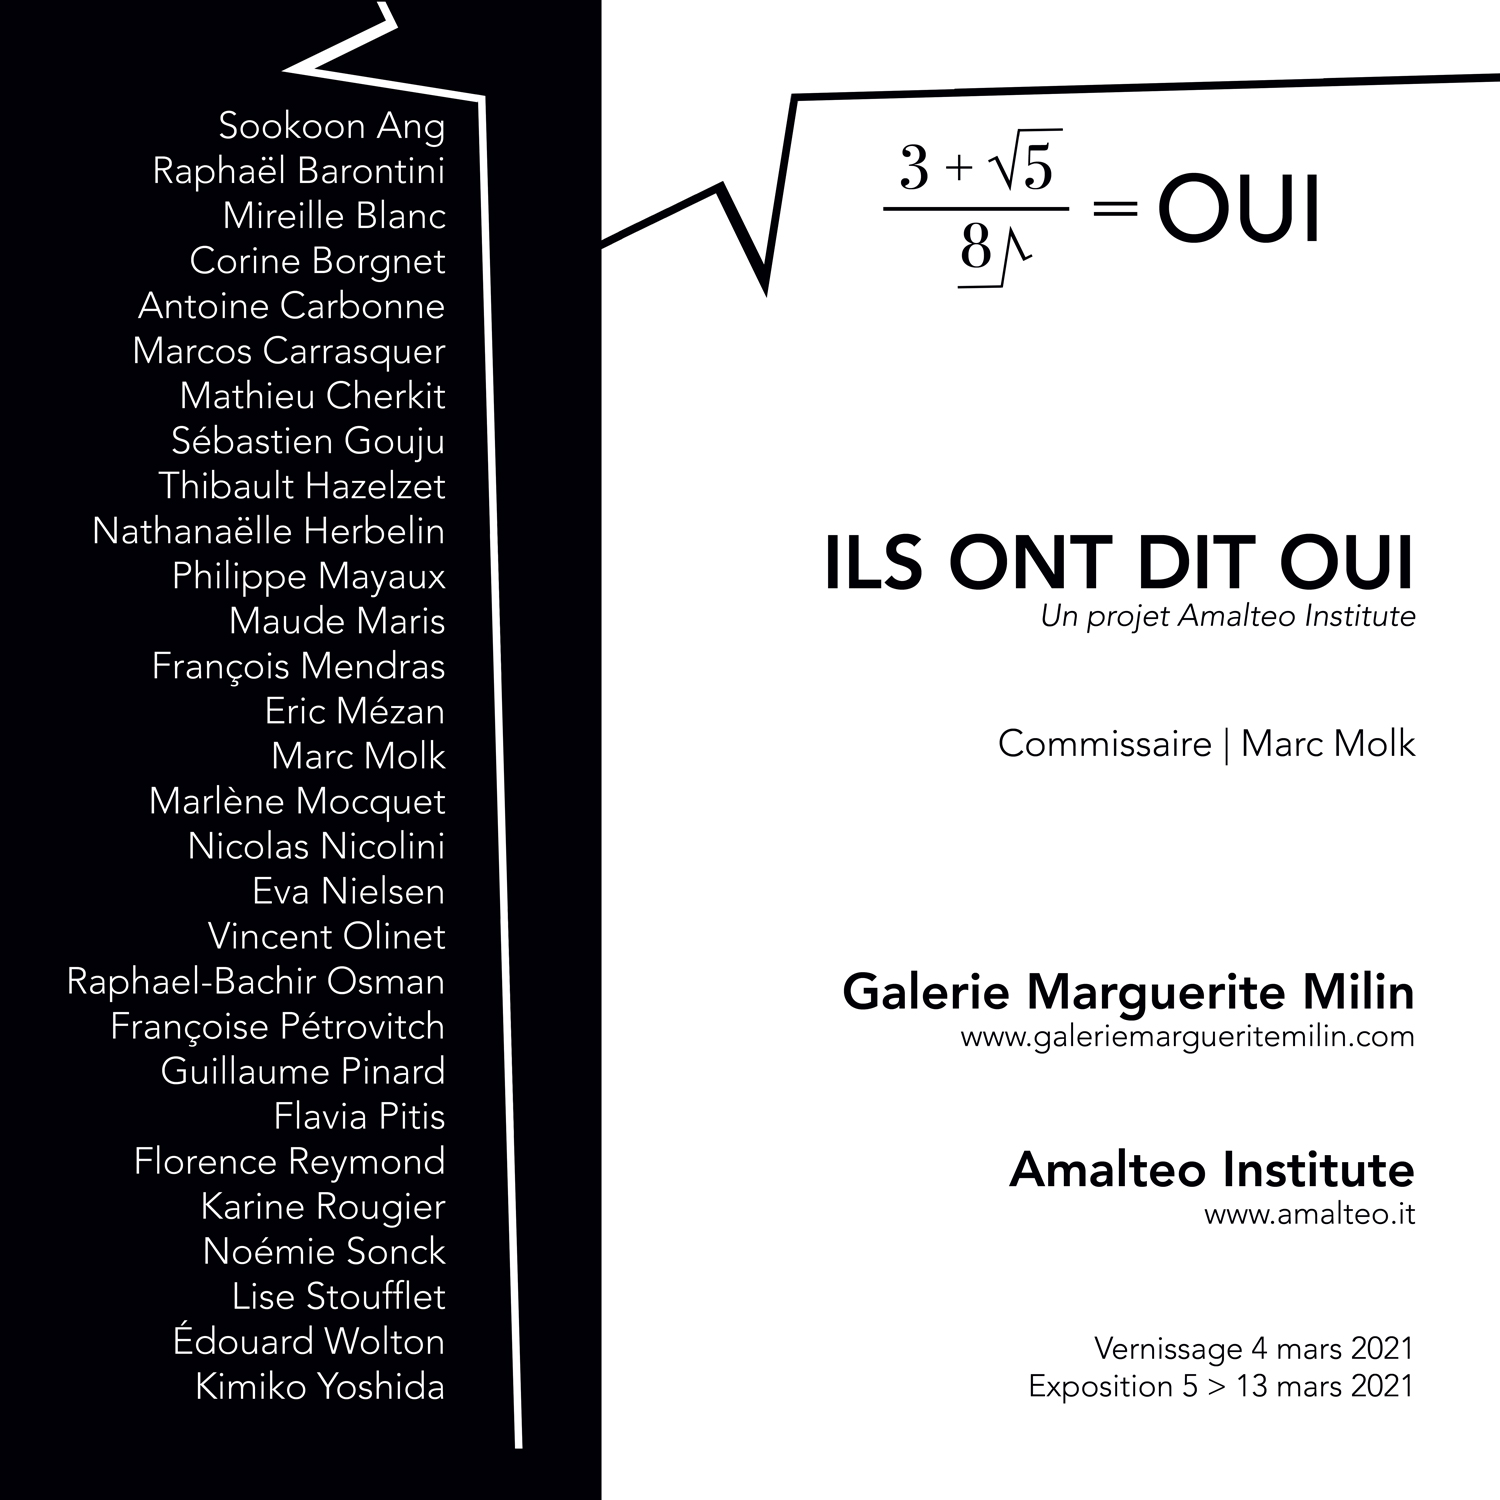 THEY SAID YES, An Amalteo Institute Project, Marguerite Milin Gallery, Paris